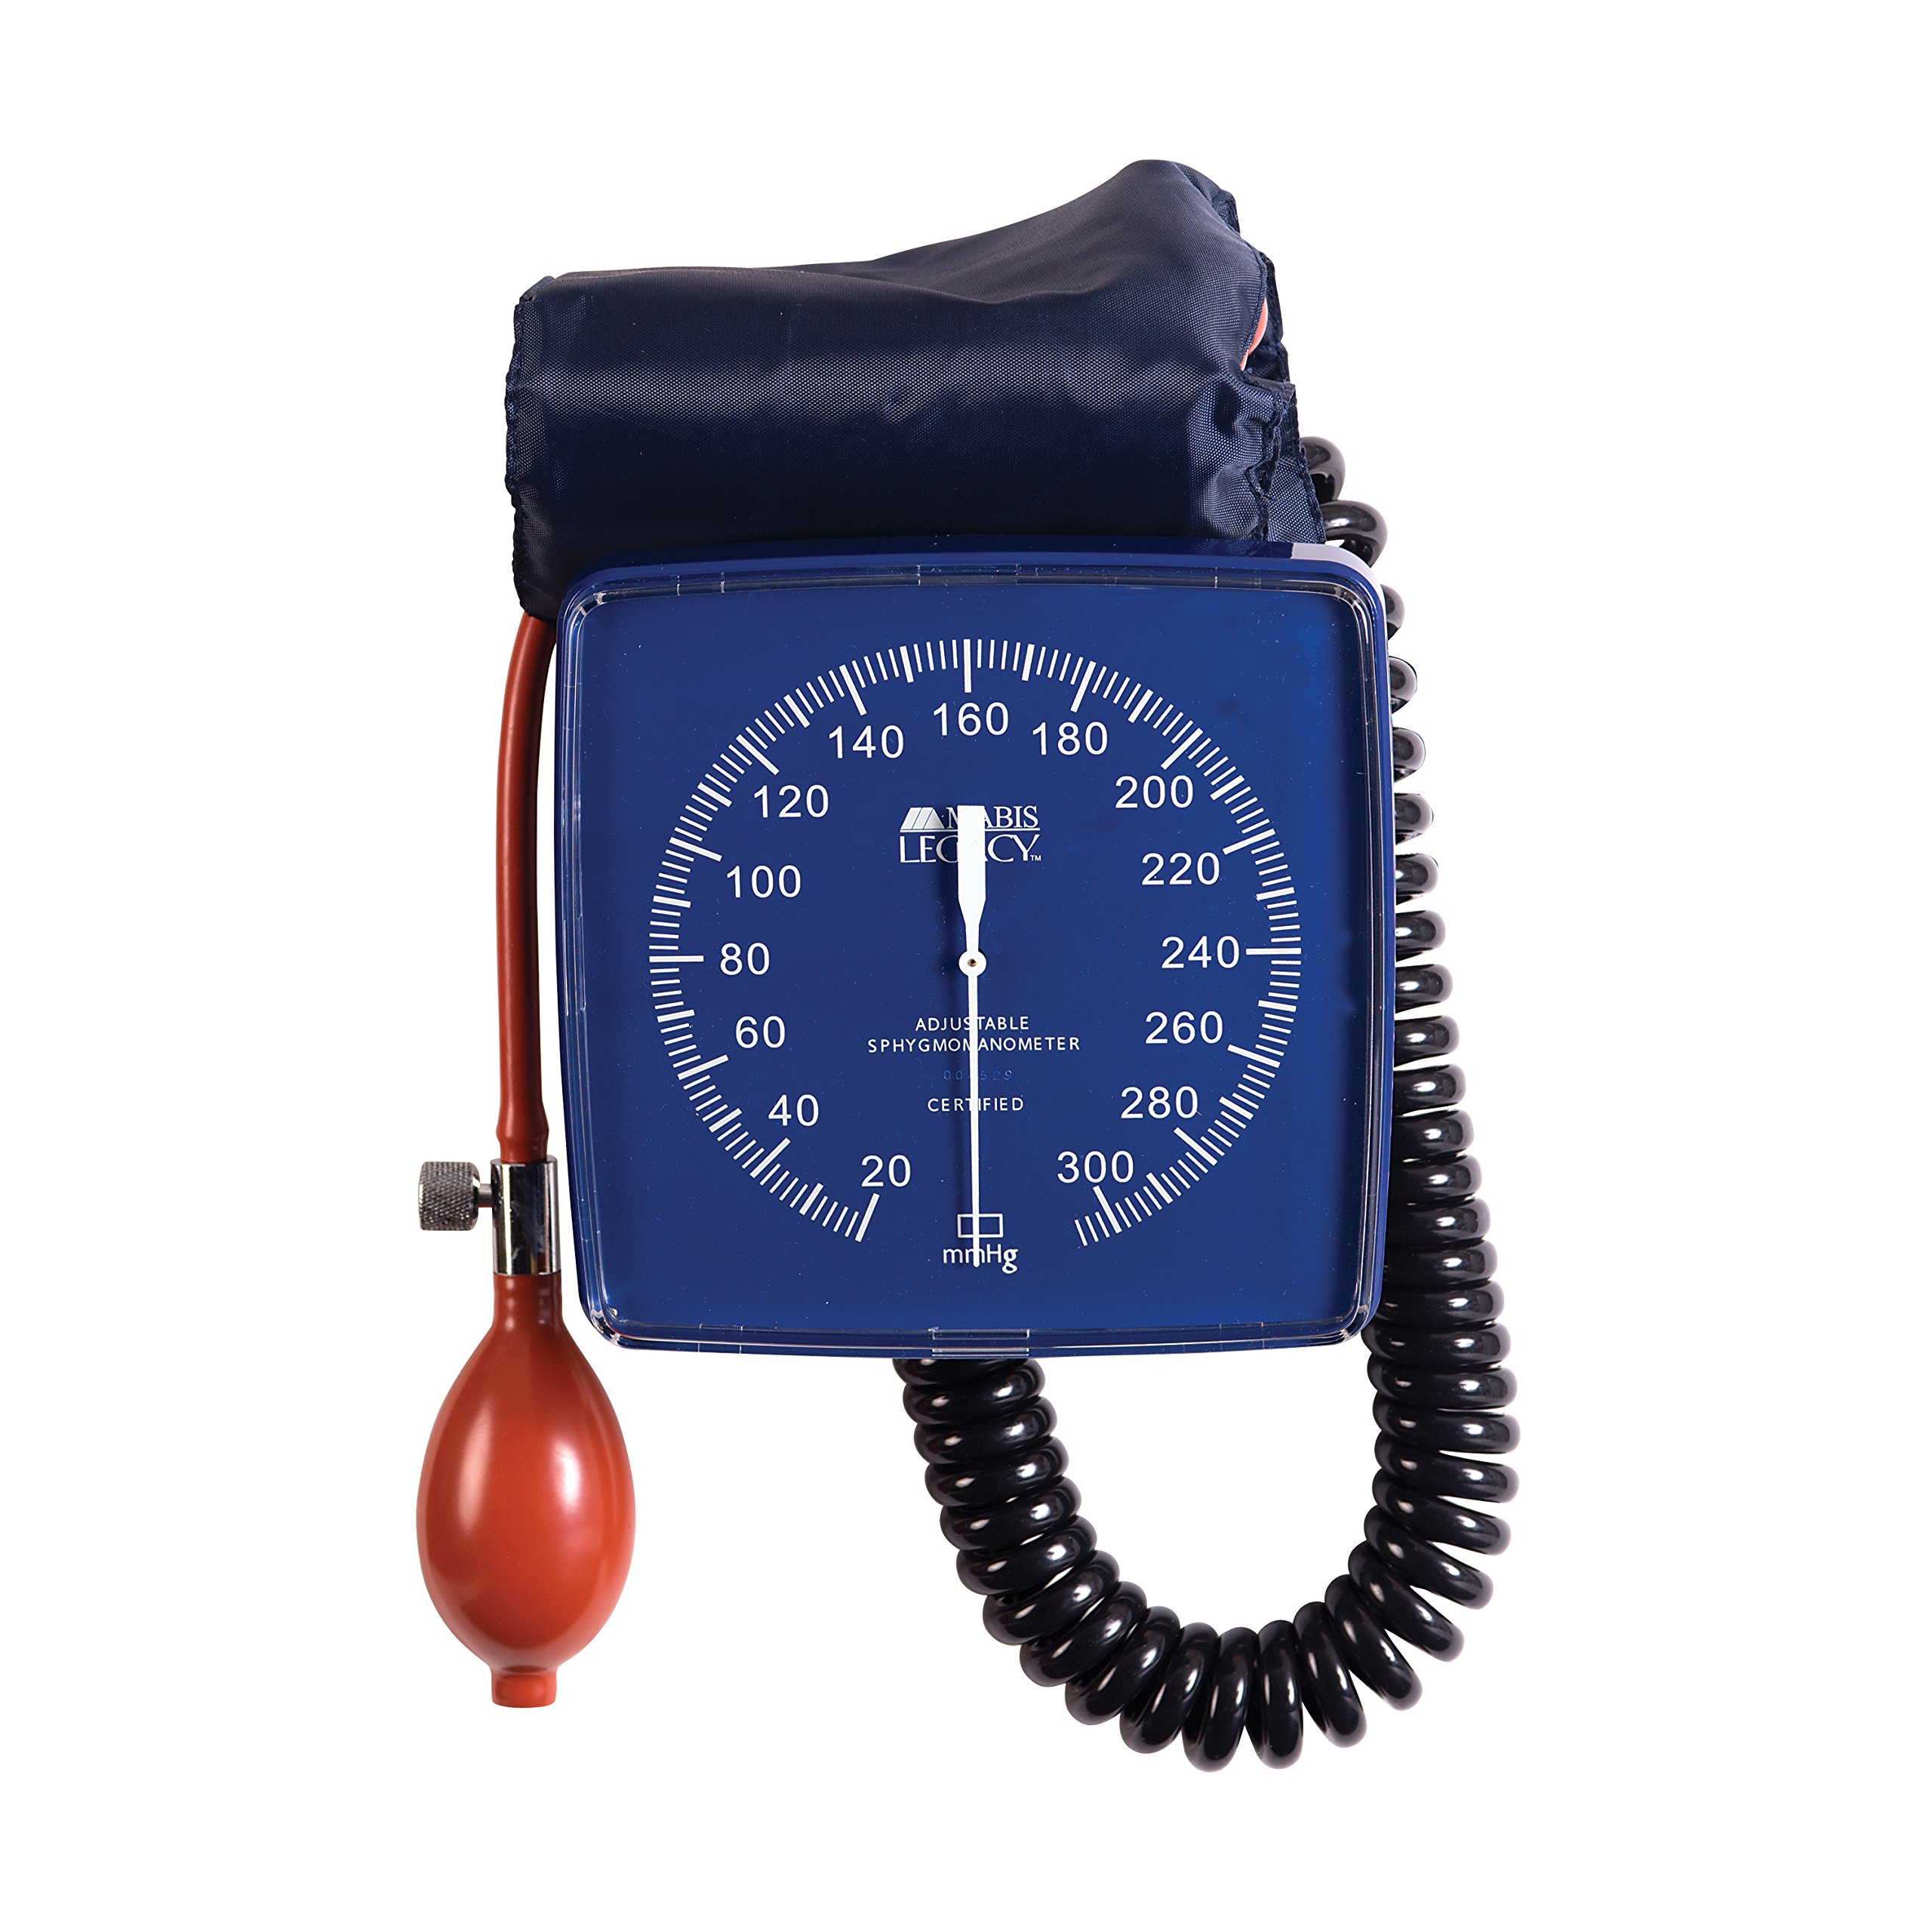 MABIS Legacy Professional Clock Aneroid Sphygmomanometer Blood Pressure Gauge with Adult Cuff, Wall Mounted, Blue